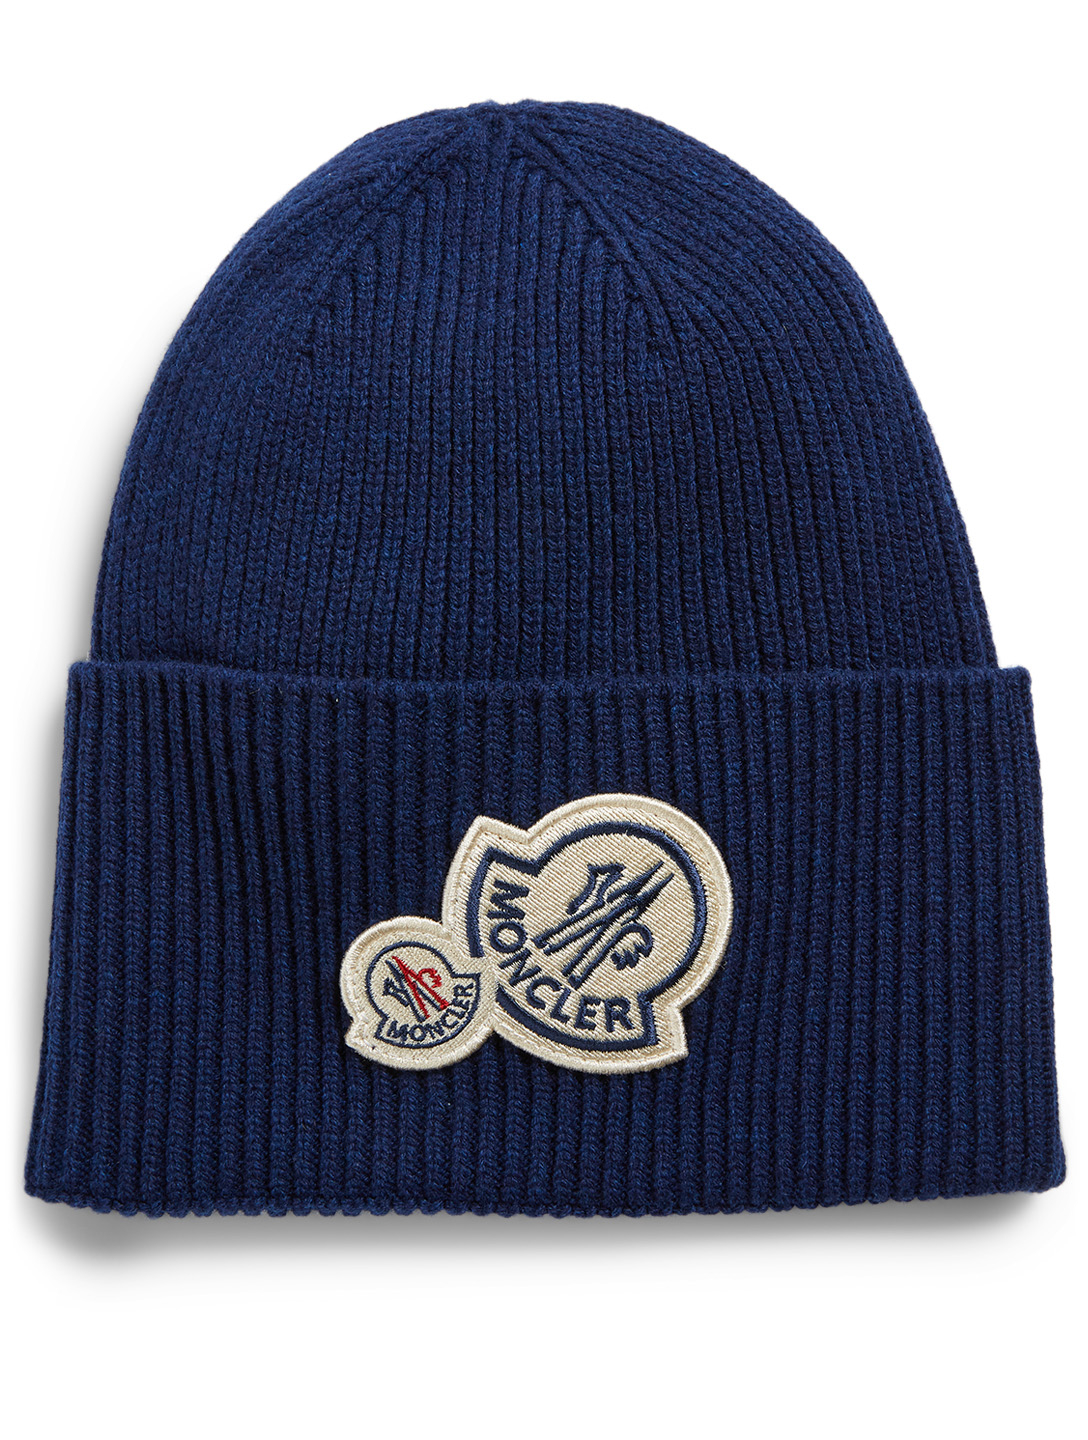 MONCLER Wool And Cashmere Knit Toque Men's Blue